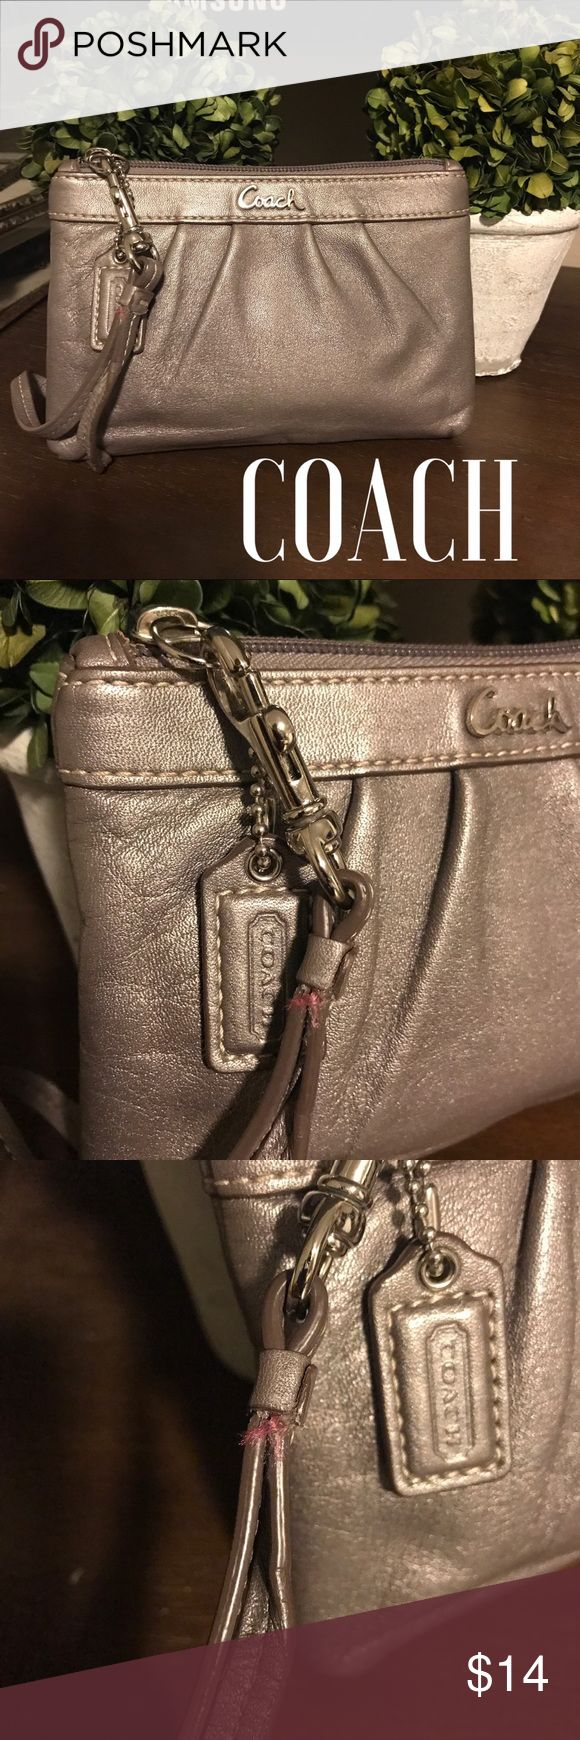 Coach Zippered Pouch In good preowned condition, charming pewter colored leather zippered pouch. Please note last photo were strap has beenReattached with professional grade leather glue. Otherwise no scratches or wearing a leather and clean interior. Coach Bags Clutches & Wristlets